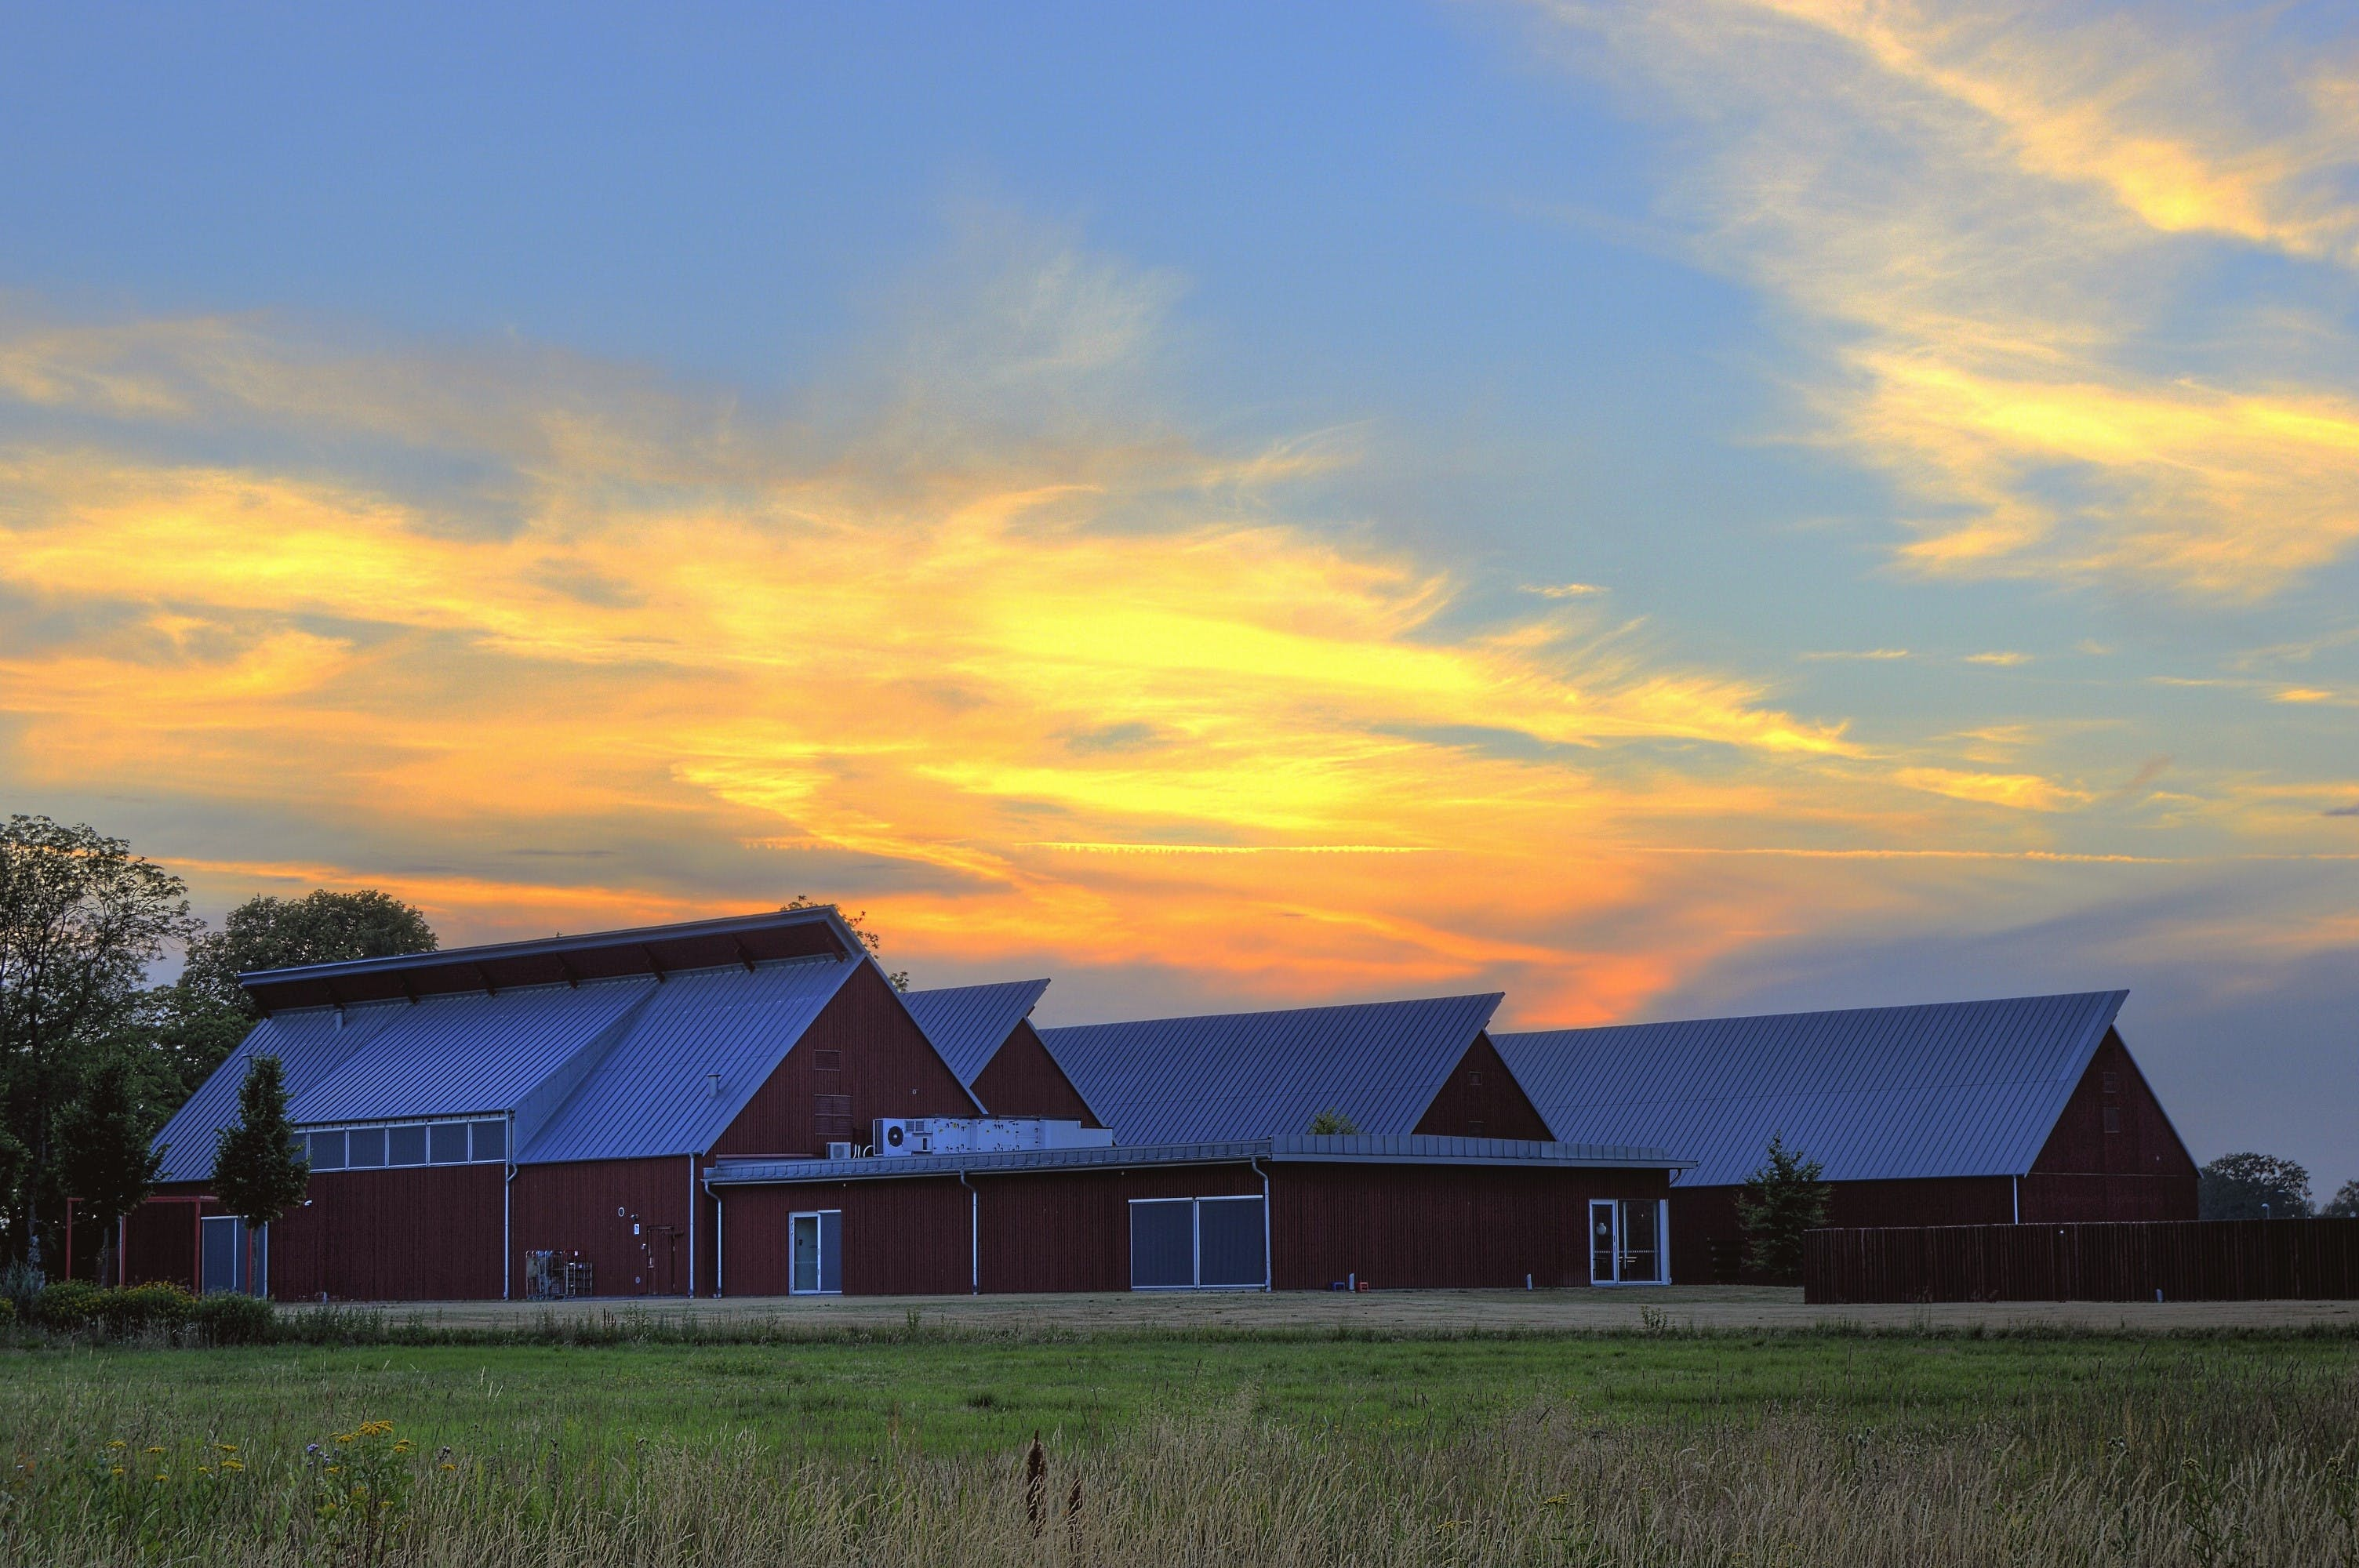 Photo Of Barn Near Grass Field During Golden Hour